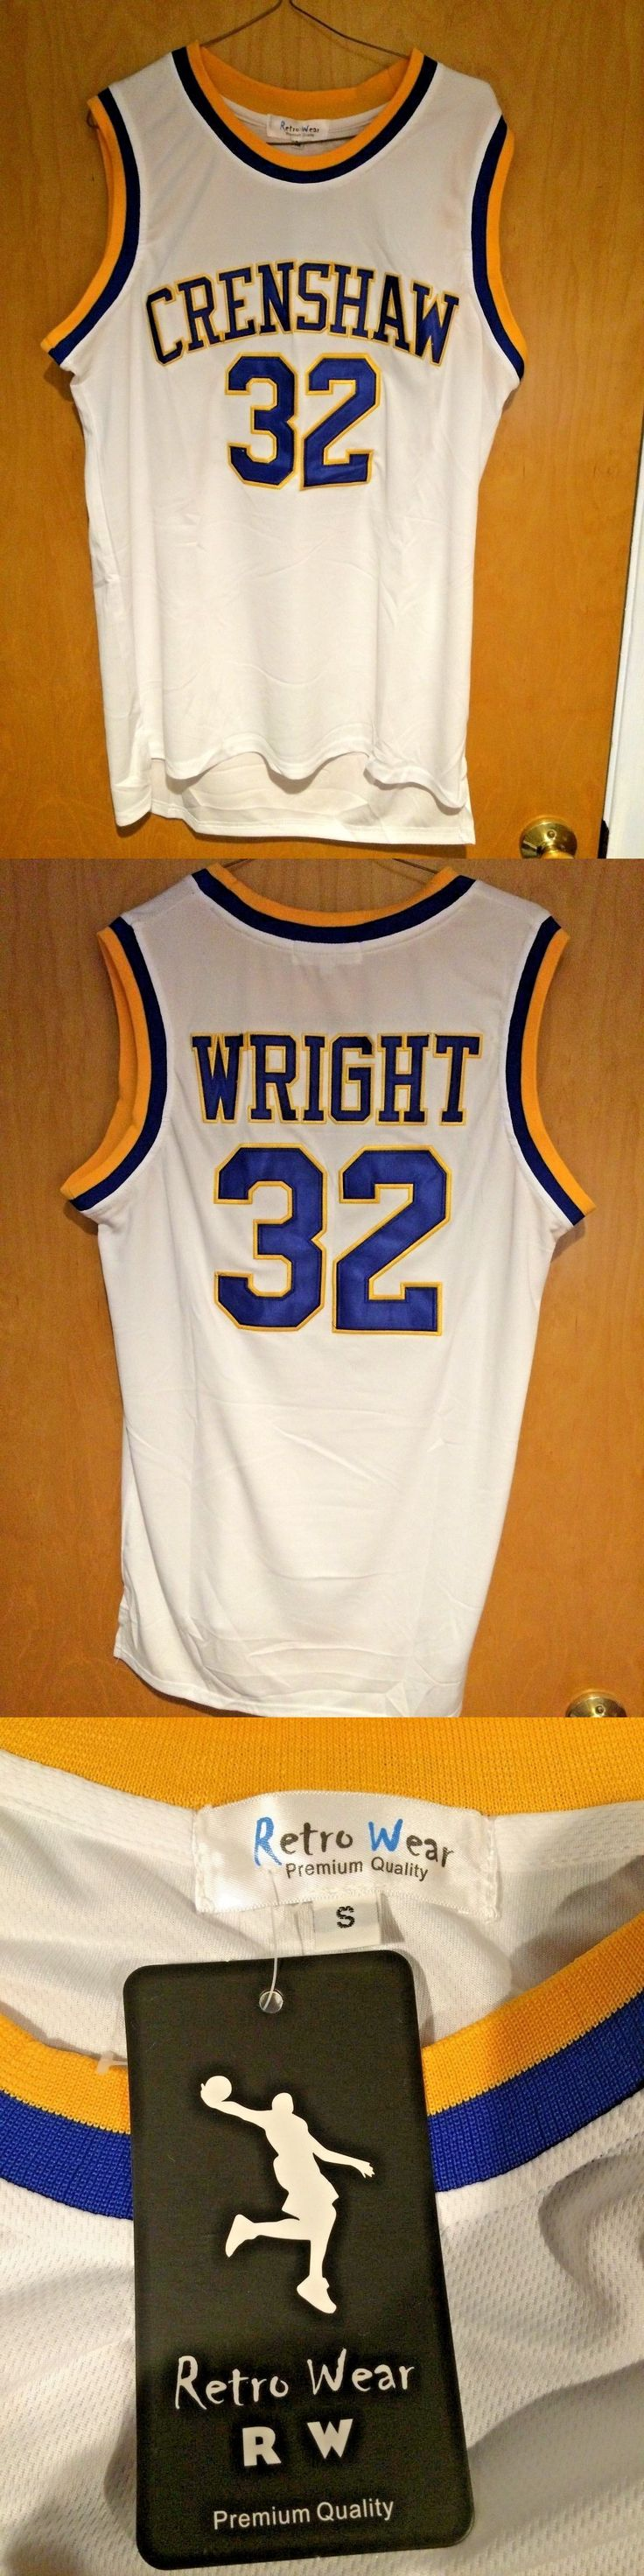 Basketball-Other 205: Love And Basketball #32 Monica Wright Jersey Sanaa Lathan S, M, L, Xl, 2Xl -> BUY IT NOW ONLY: $39.99 on eBay!